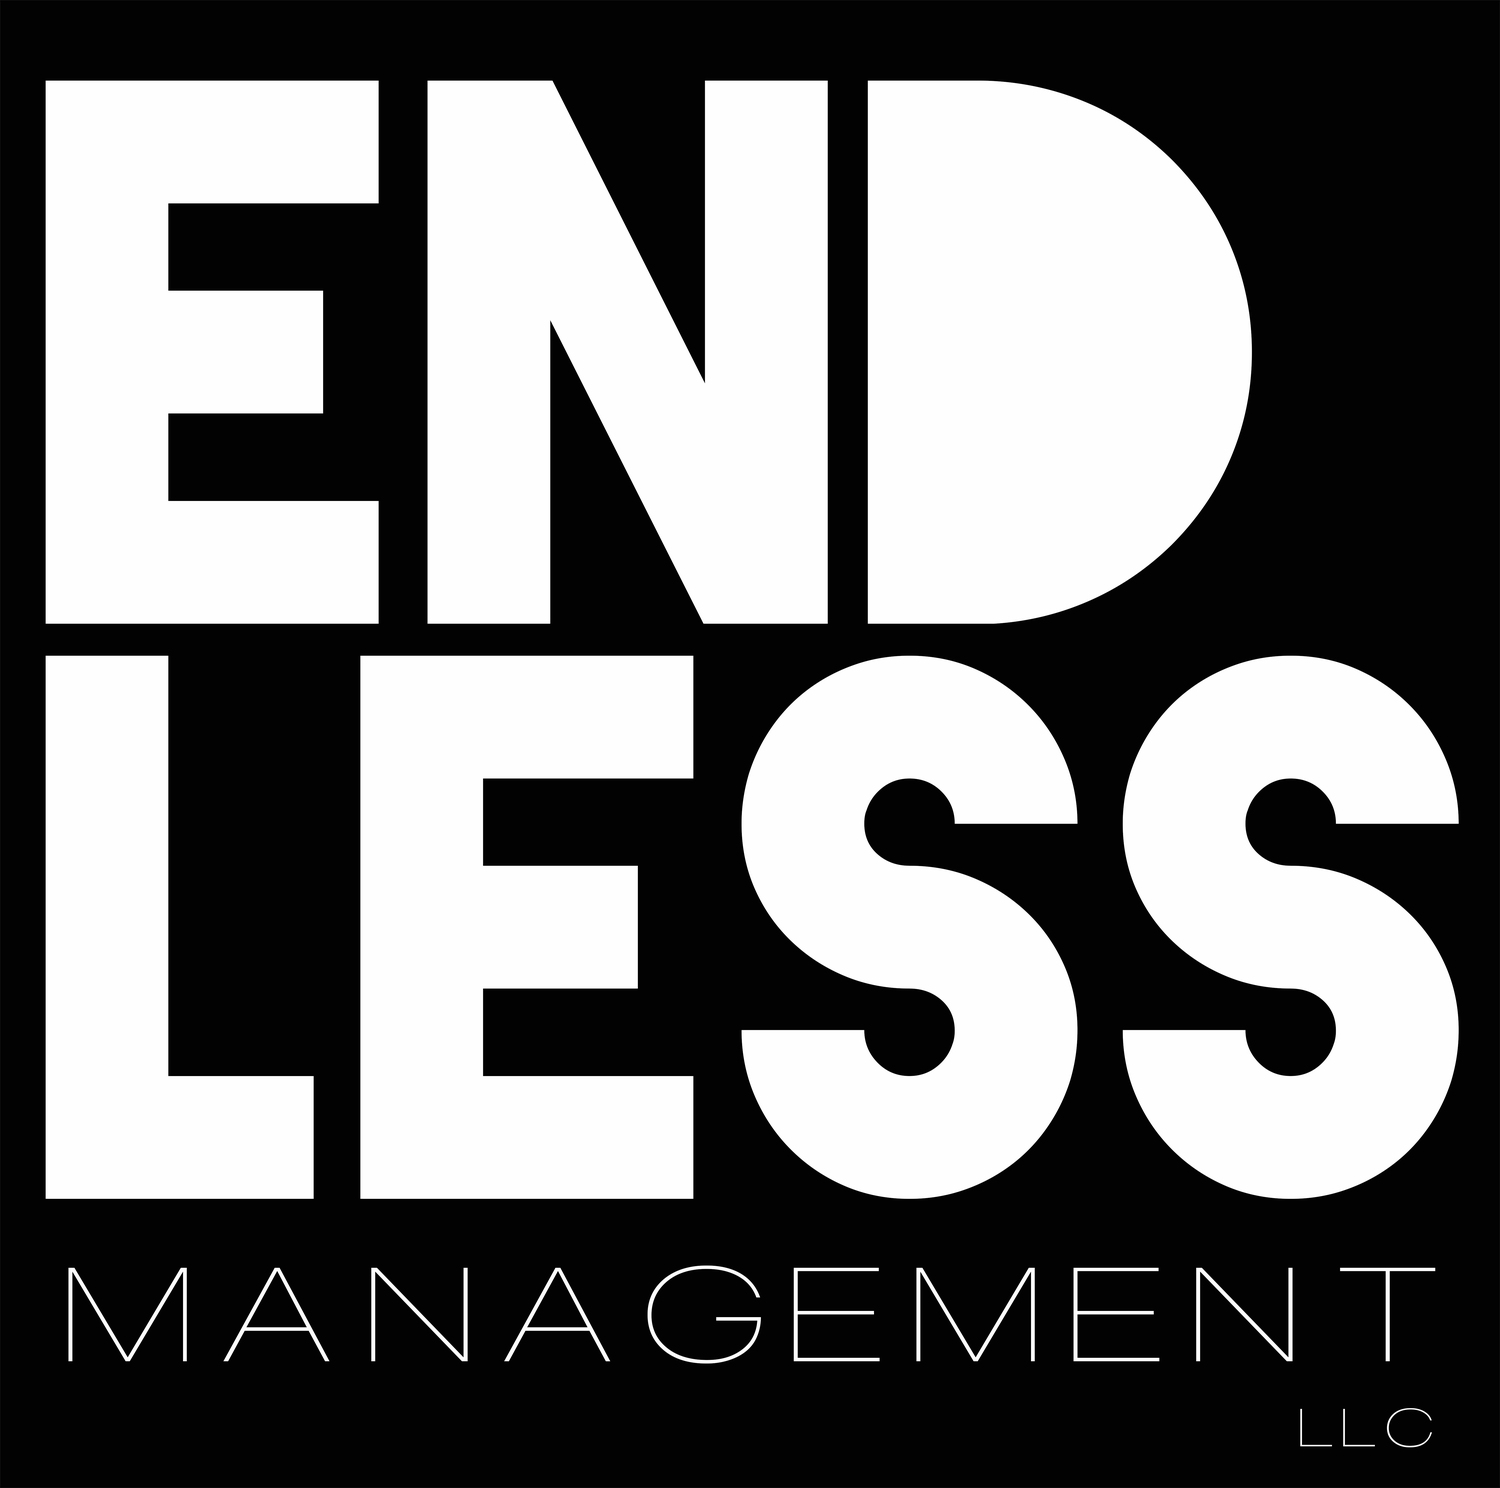 Endless Management